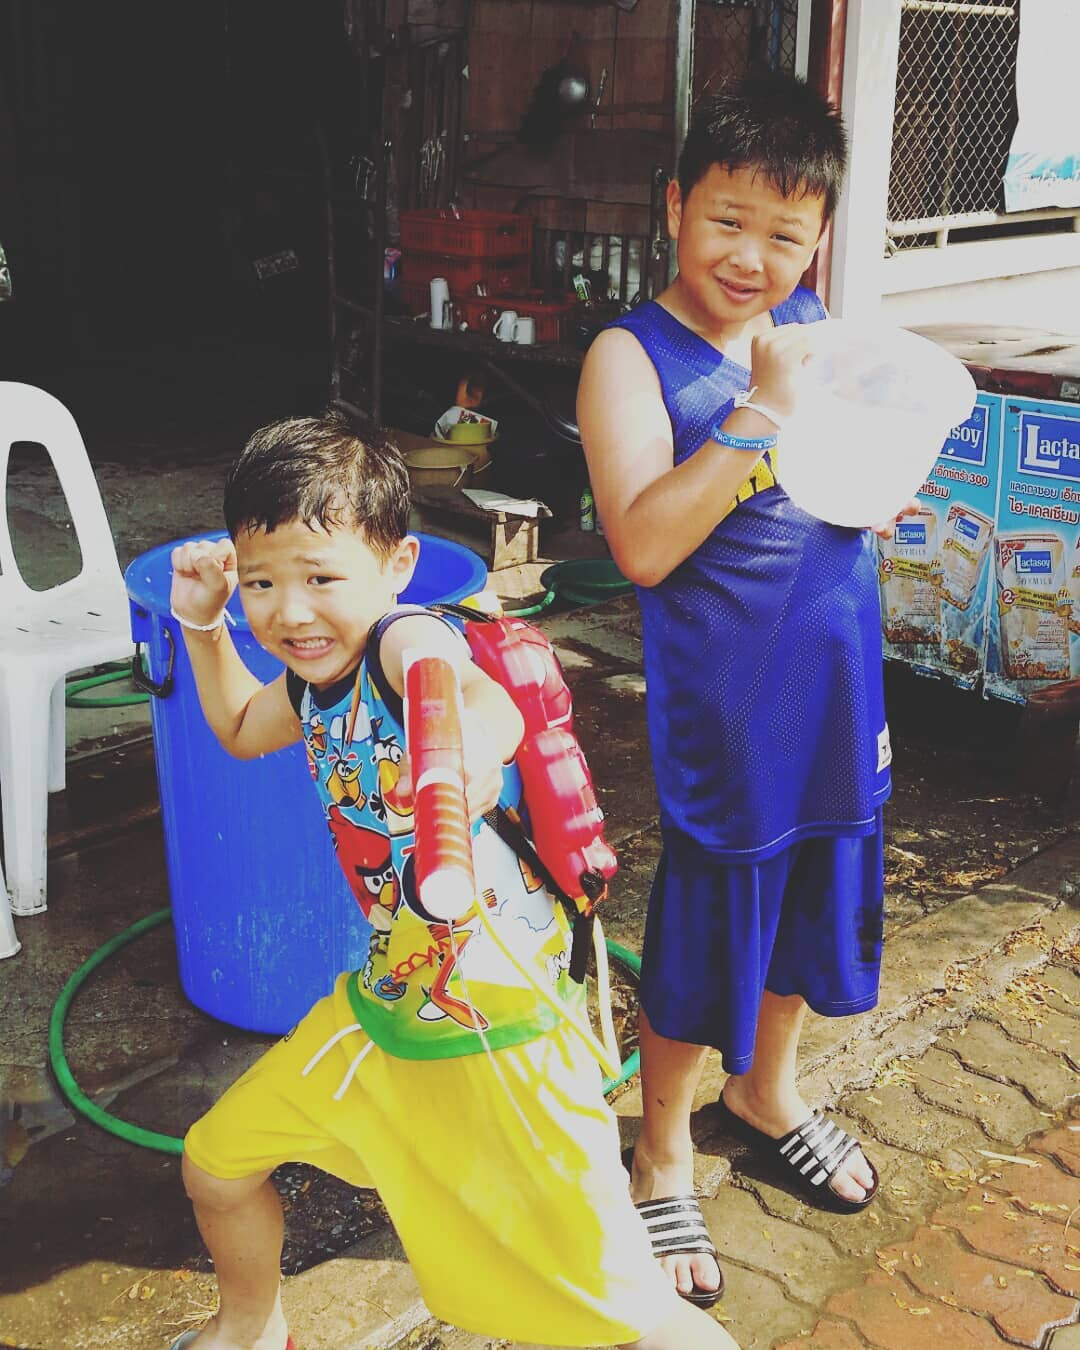 Two young boys during Songkran in Thailand